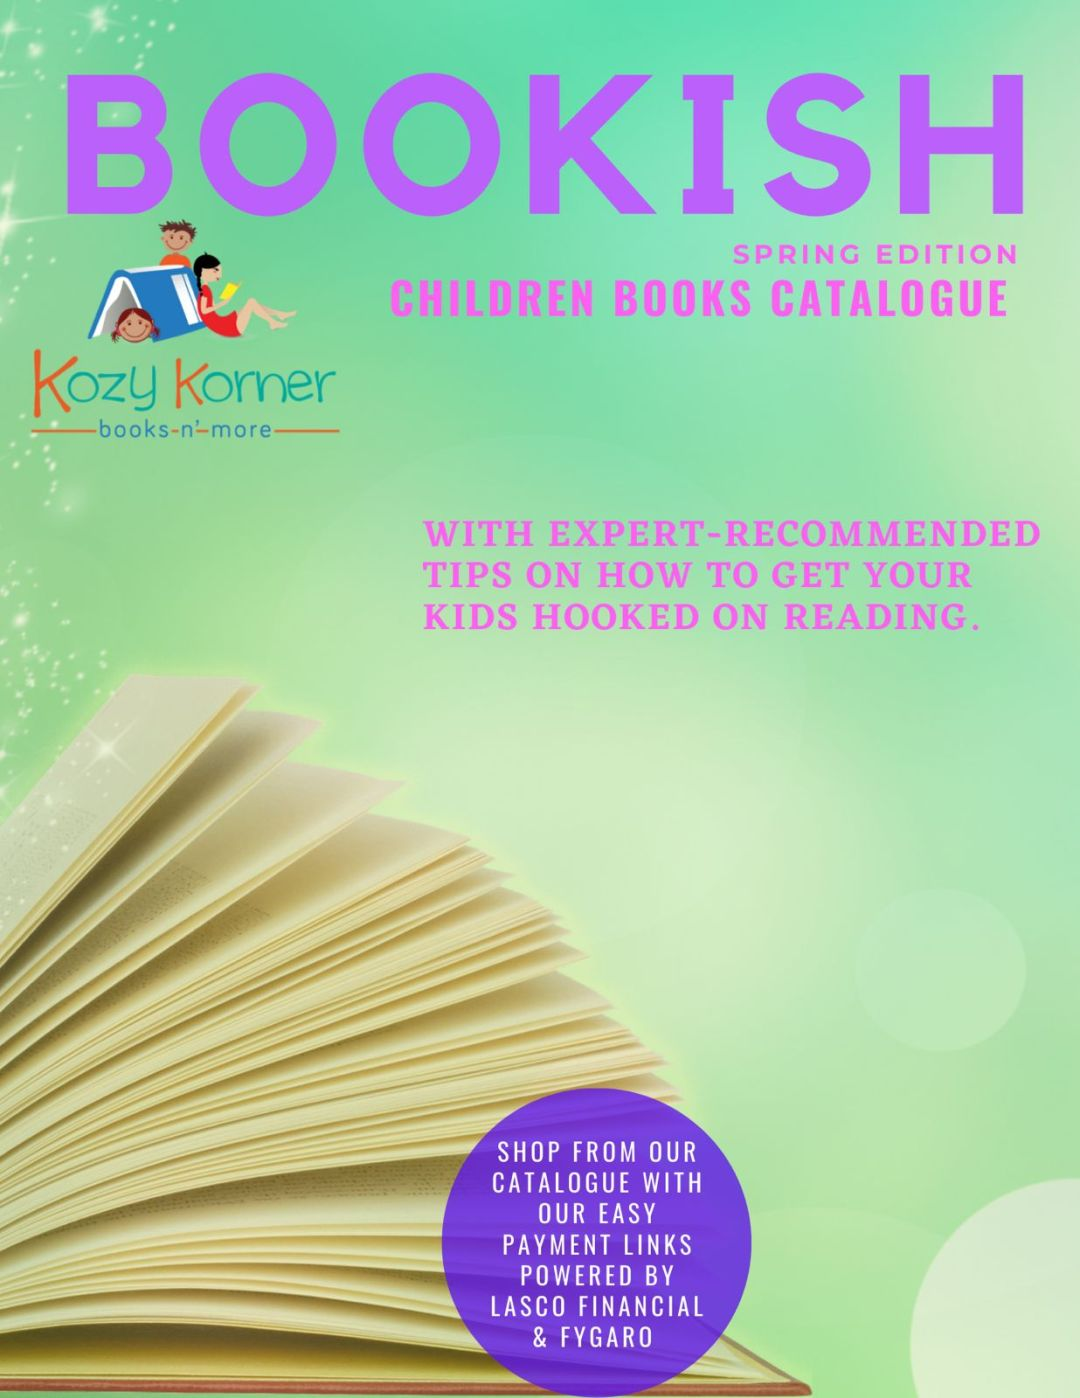 Bookish Catalogue Spring Edition Cover Page